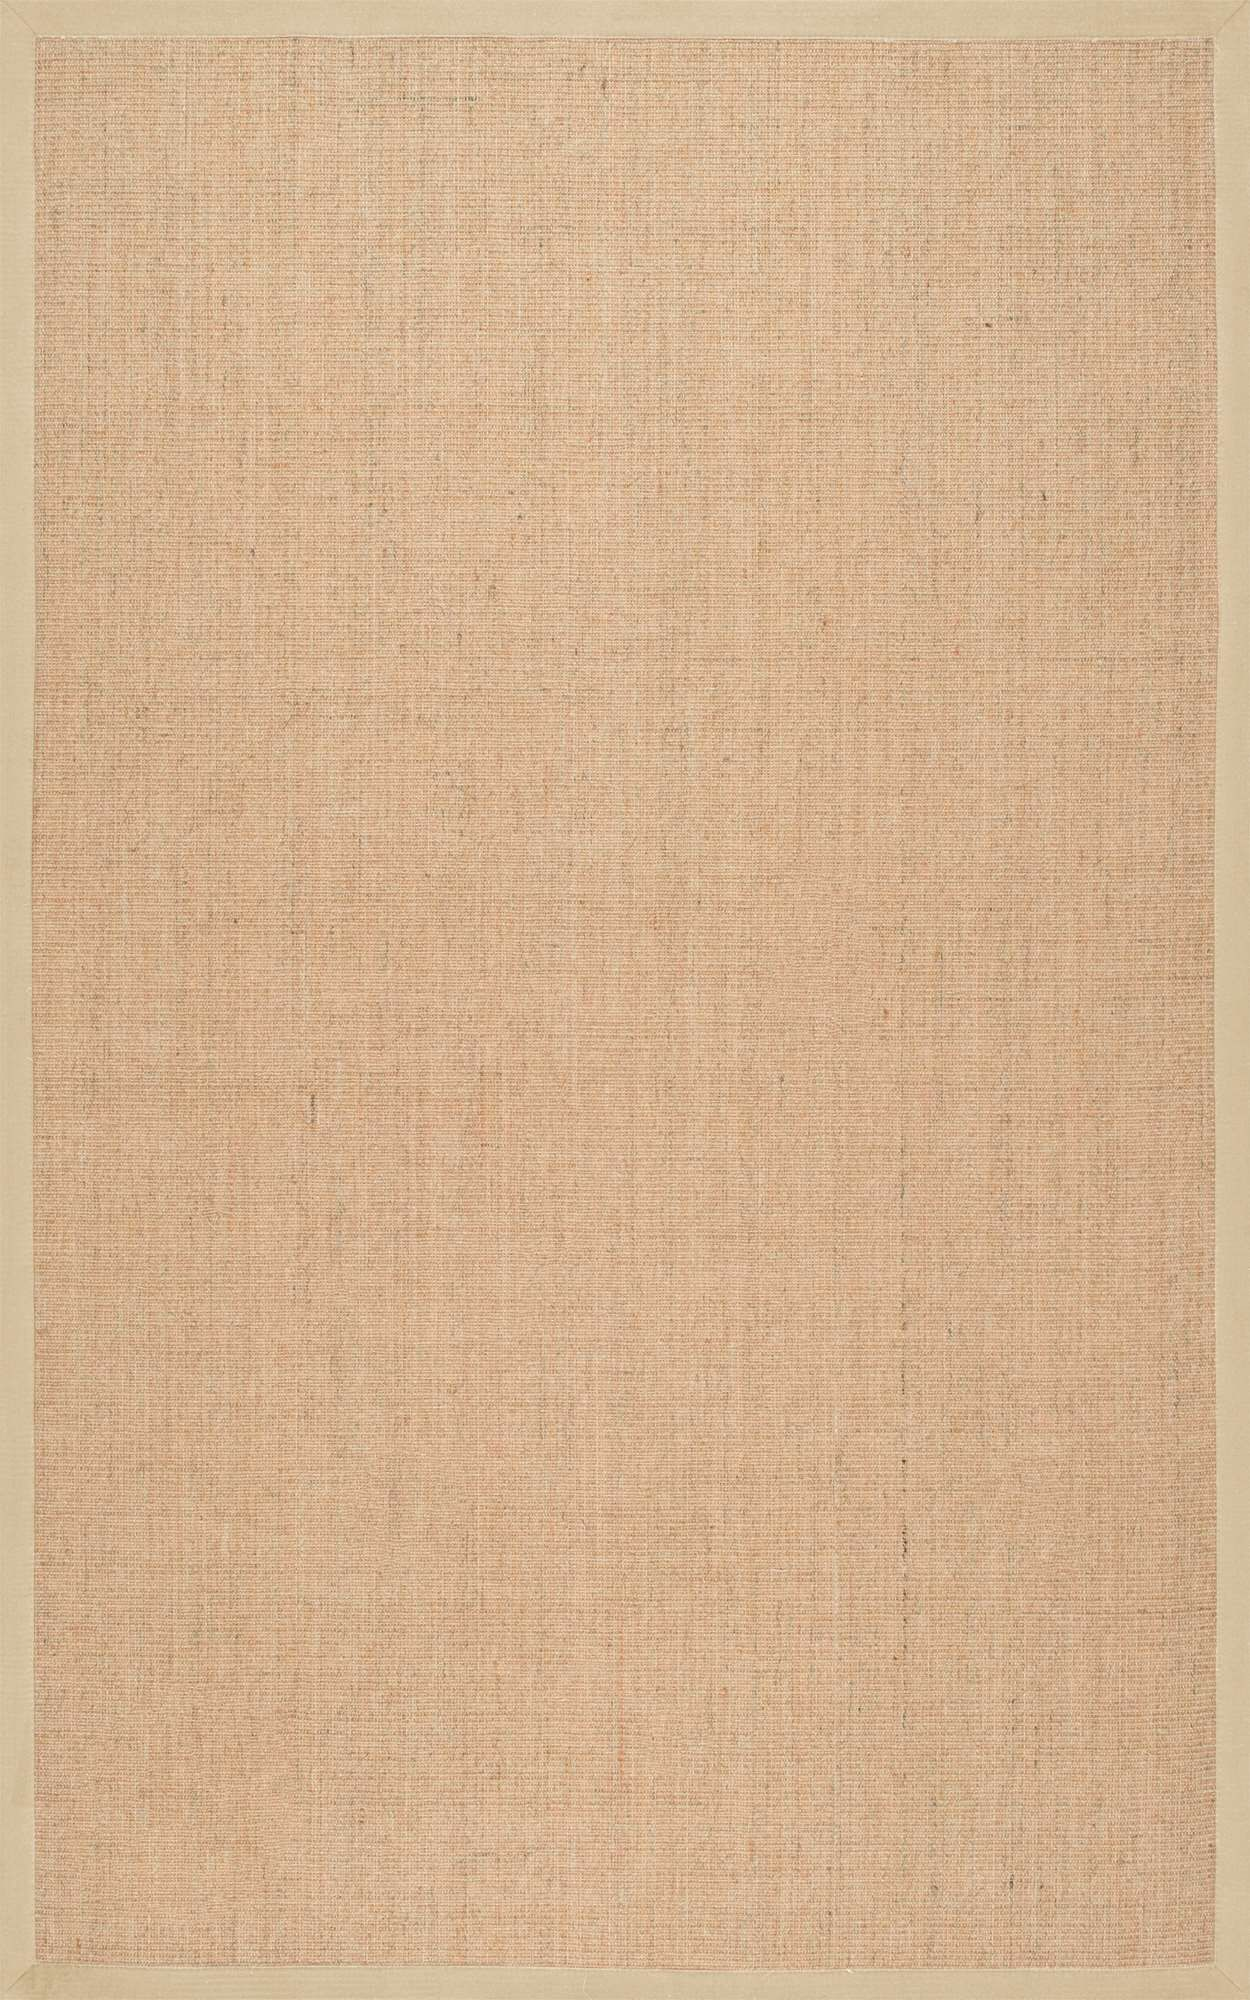 Alhambra Contemporary Sand Area Rug Rug Size: Square 6'